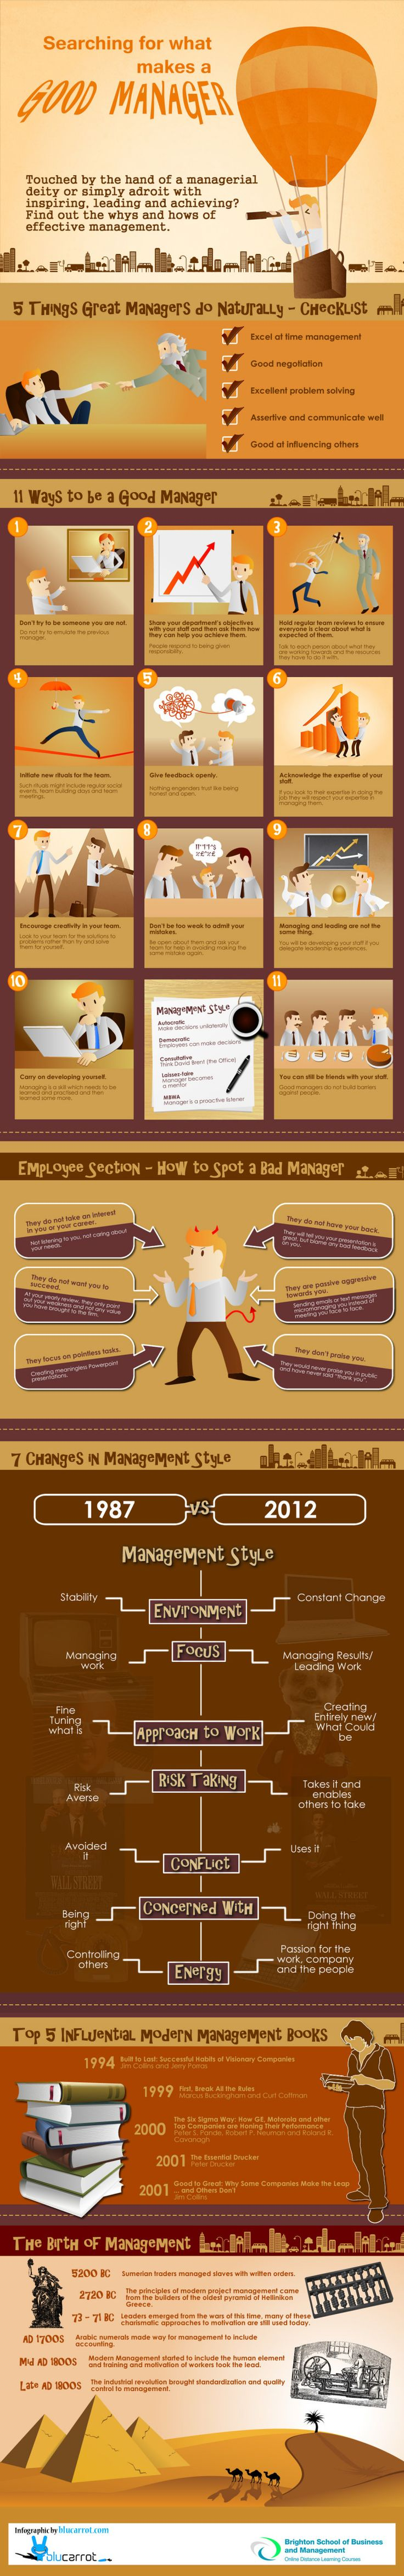 A great manager takes the skills and talents of their team to new heights when they apply effective leadership ability to the tasks at hand, day in and day out.Ifyou've just stepped into a managerial position or have dreams of doing so in the future, this infographic from the Brighton School of Business